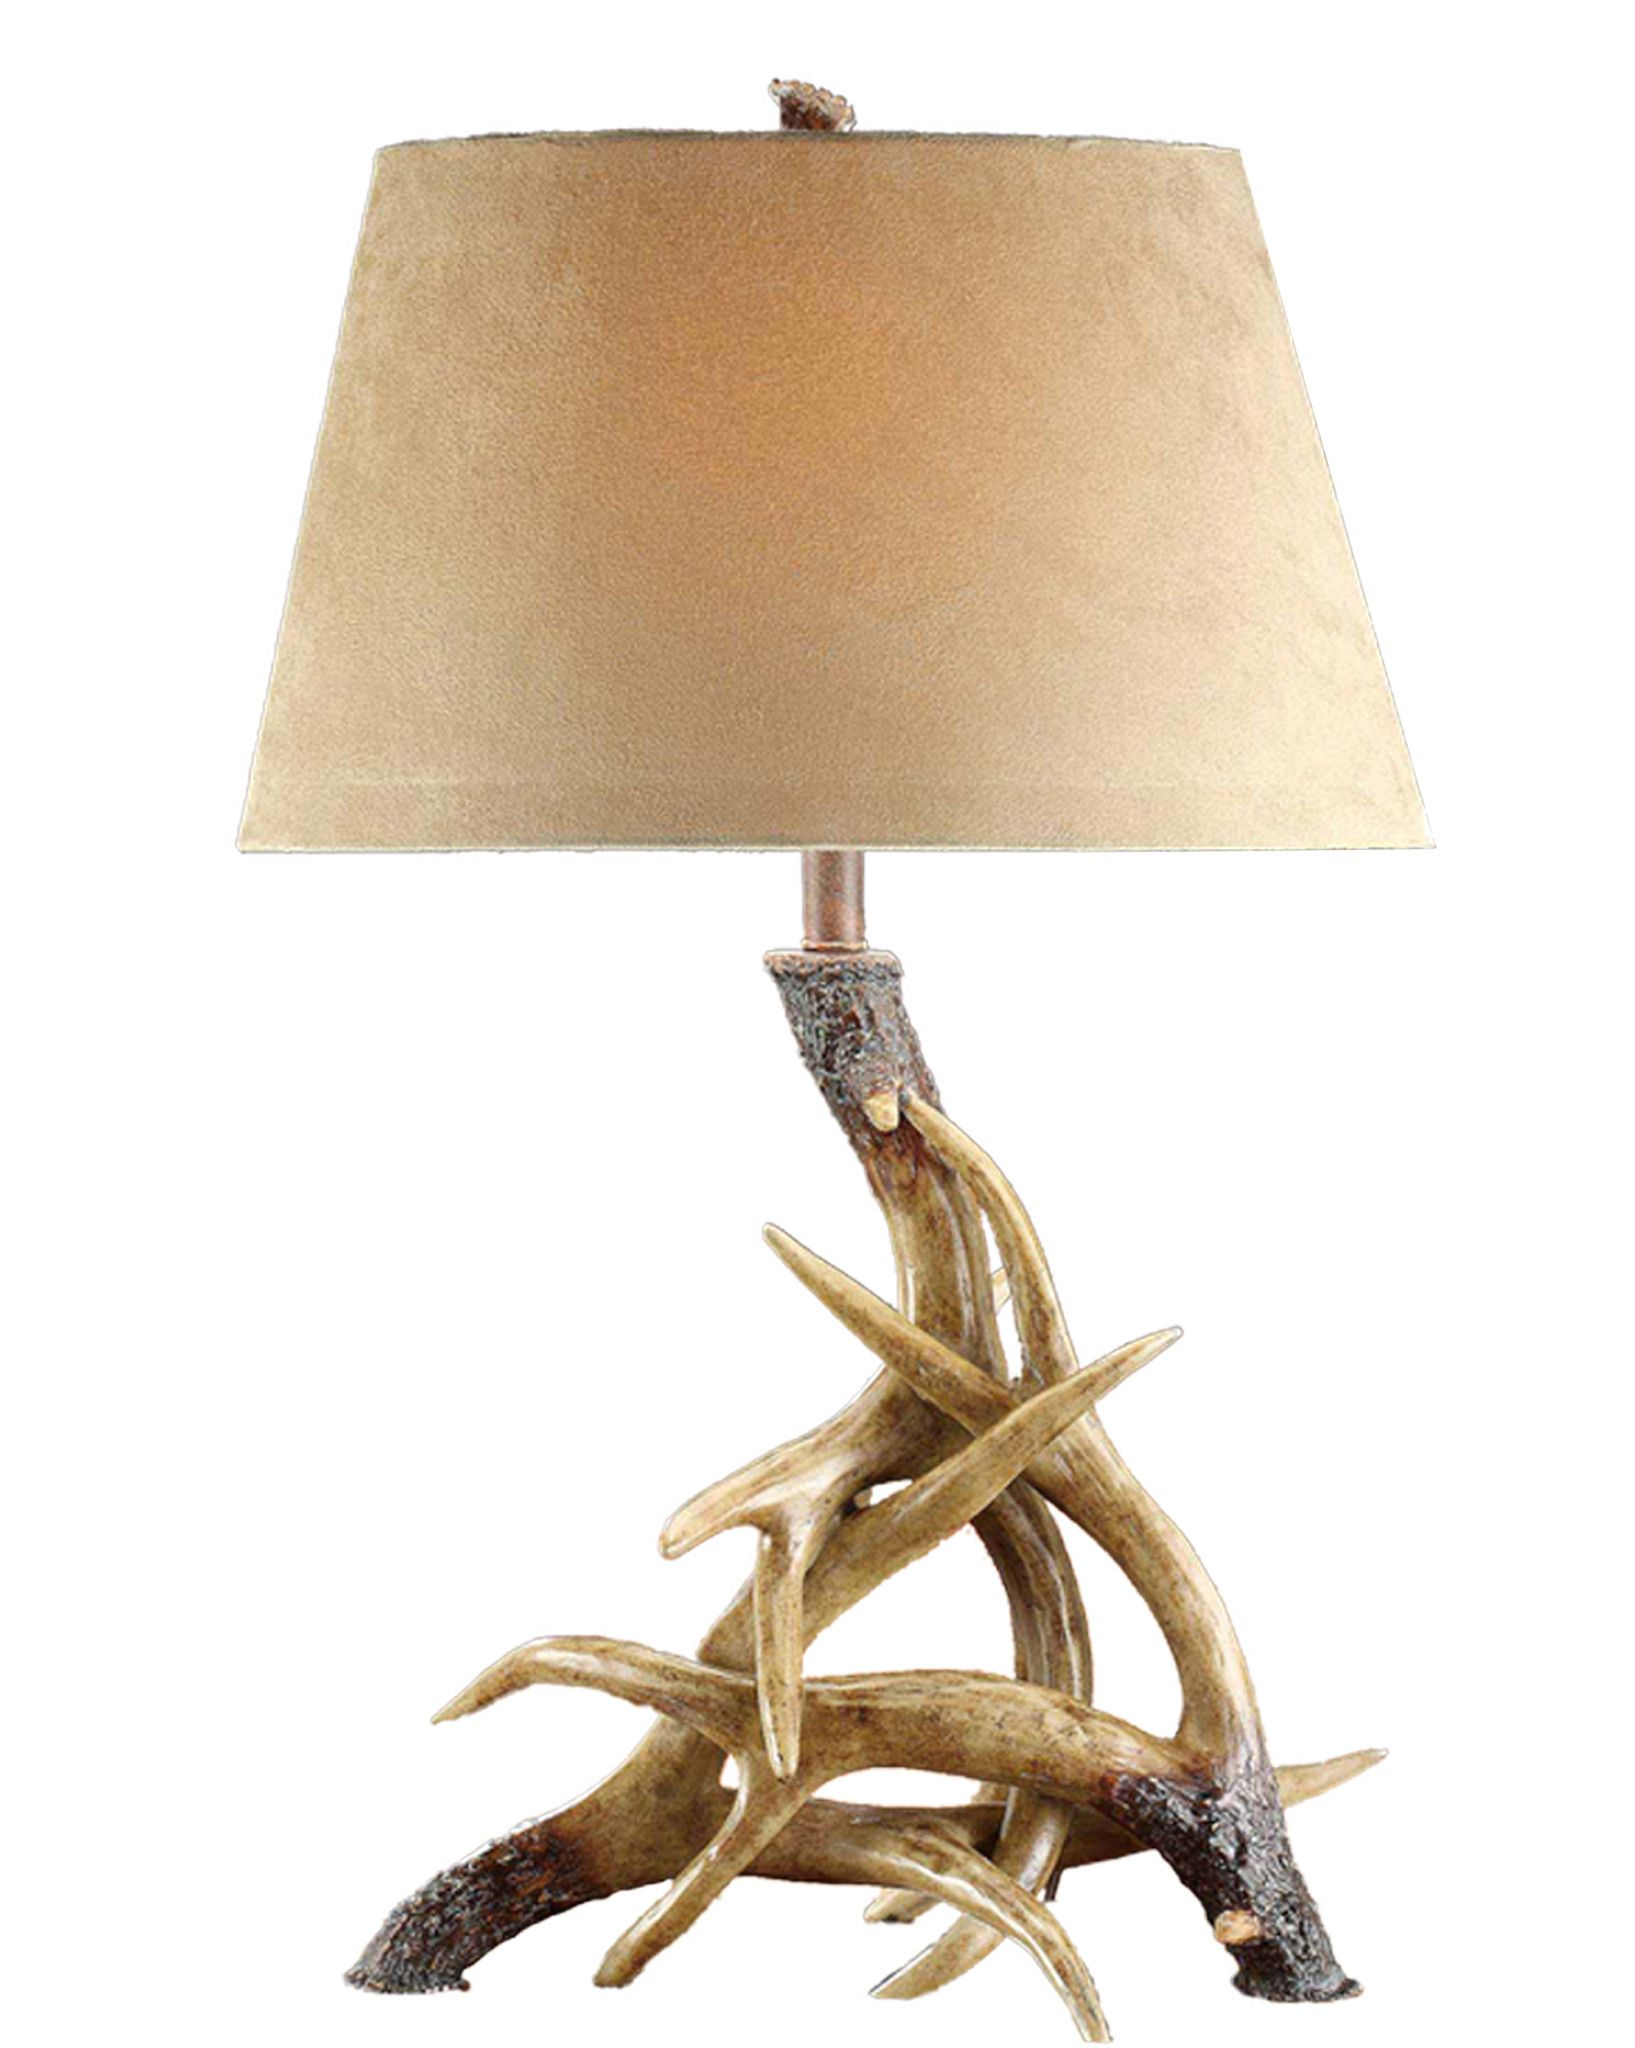 Antler Table Lamp From Southern